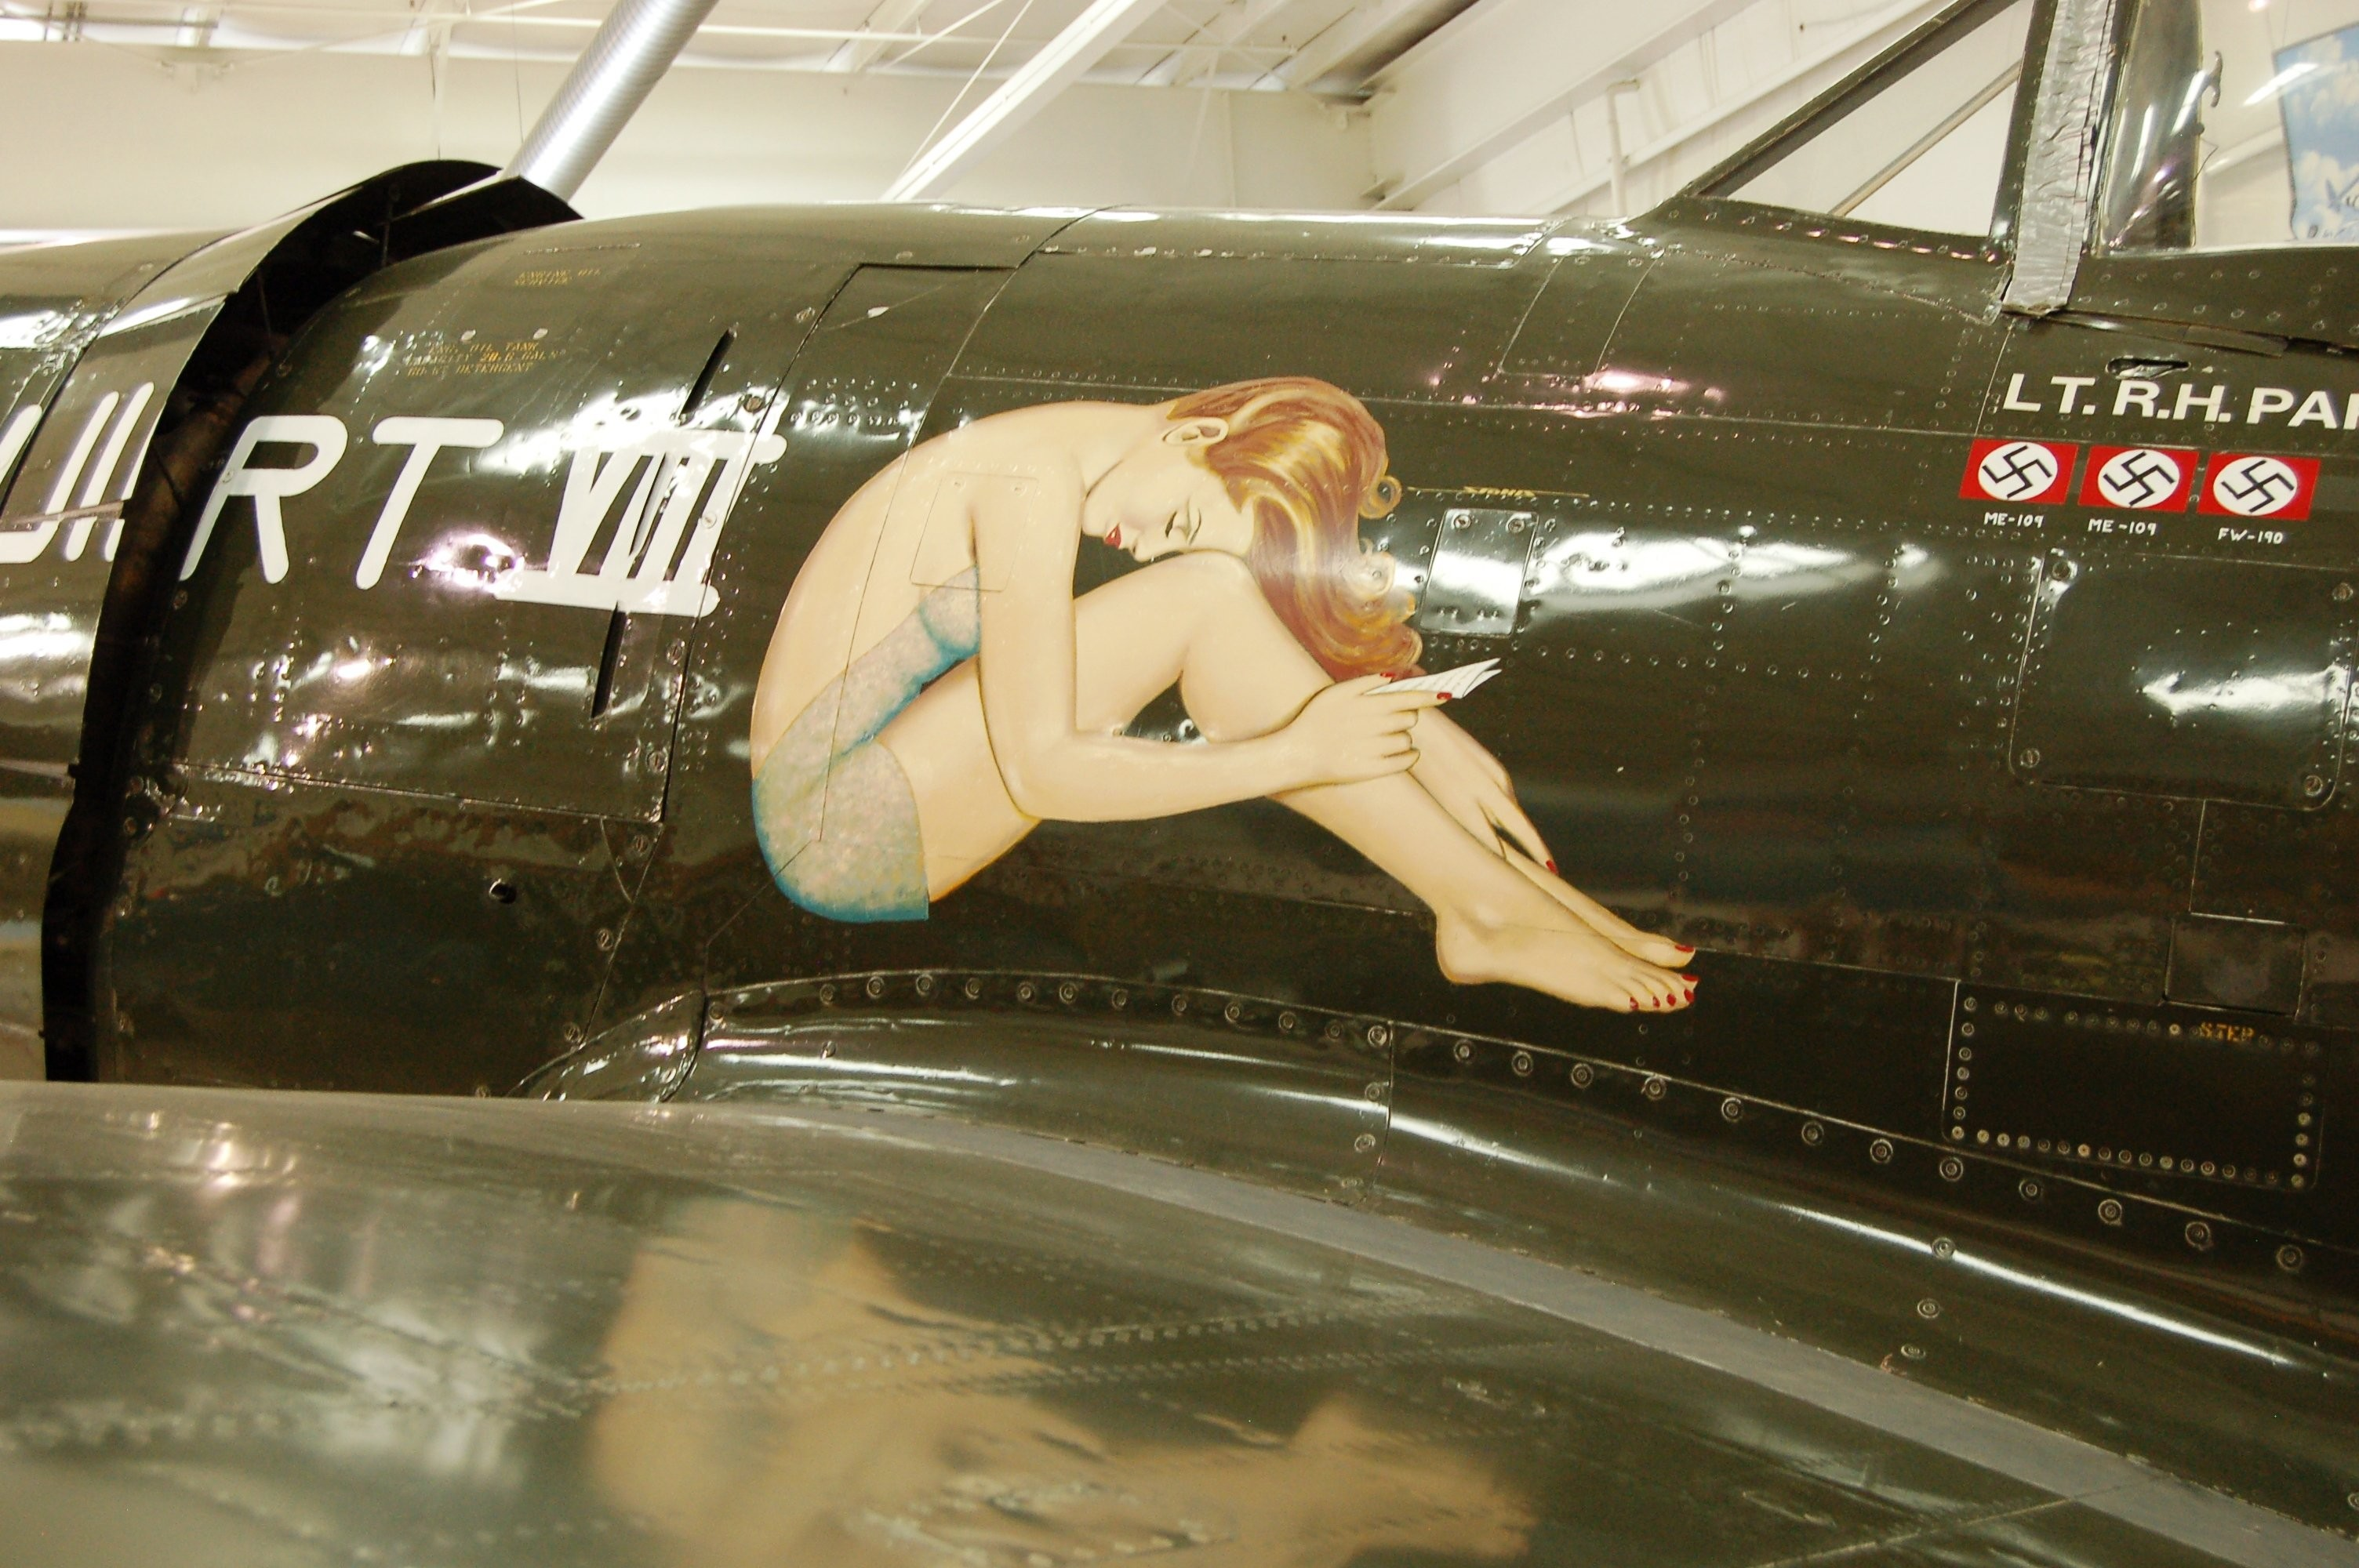 3008x2000 Nose Art aircrafts plane fighter pin-up wallpaper |  | 491505 |  WallpaperUP